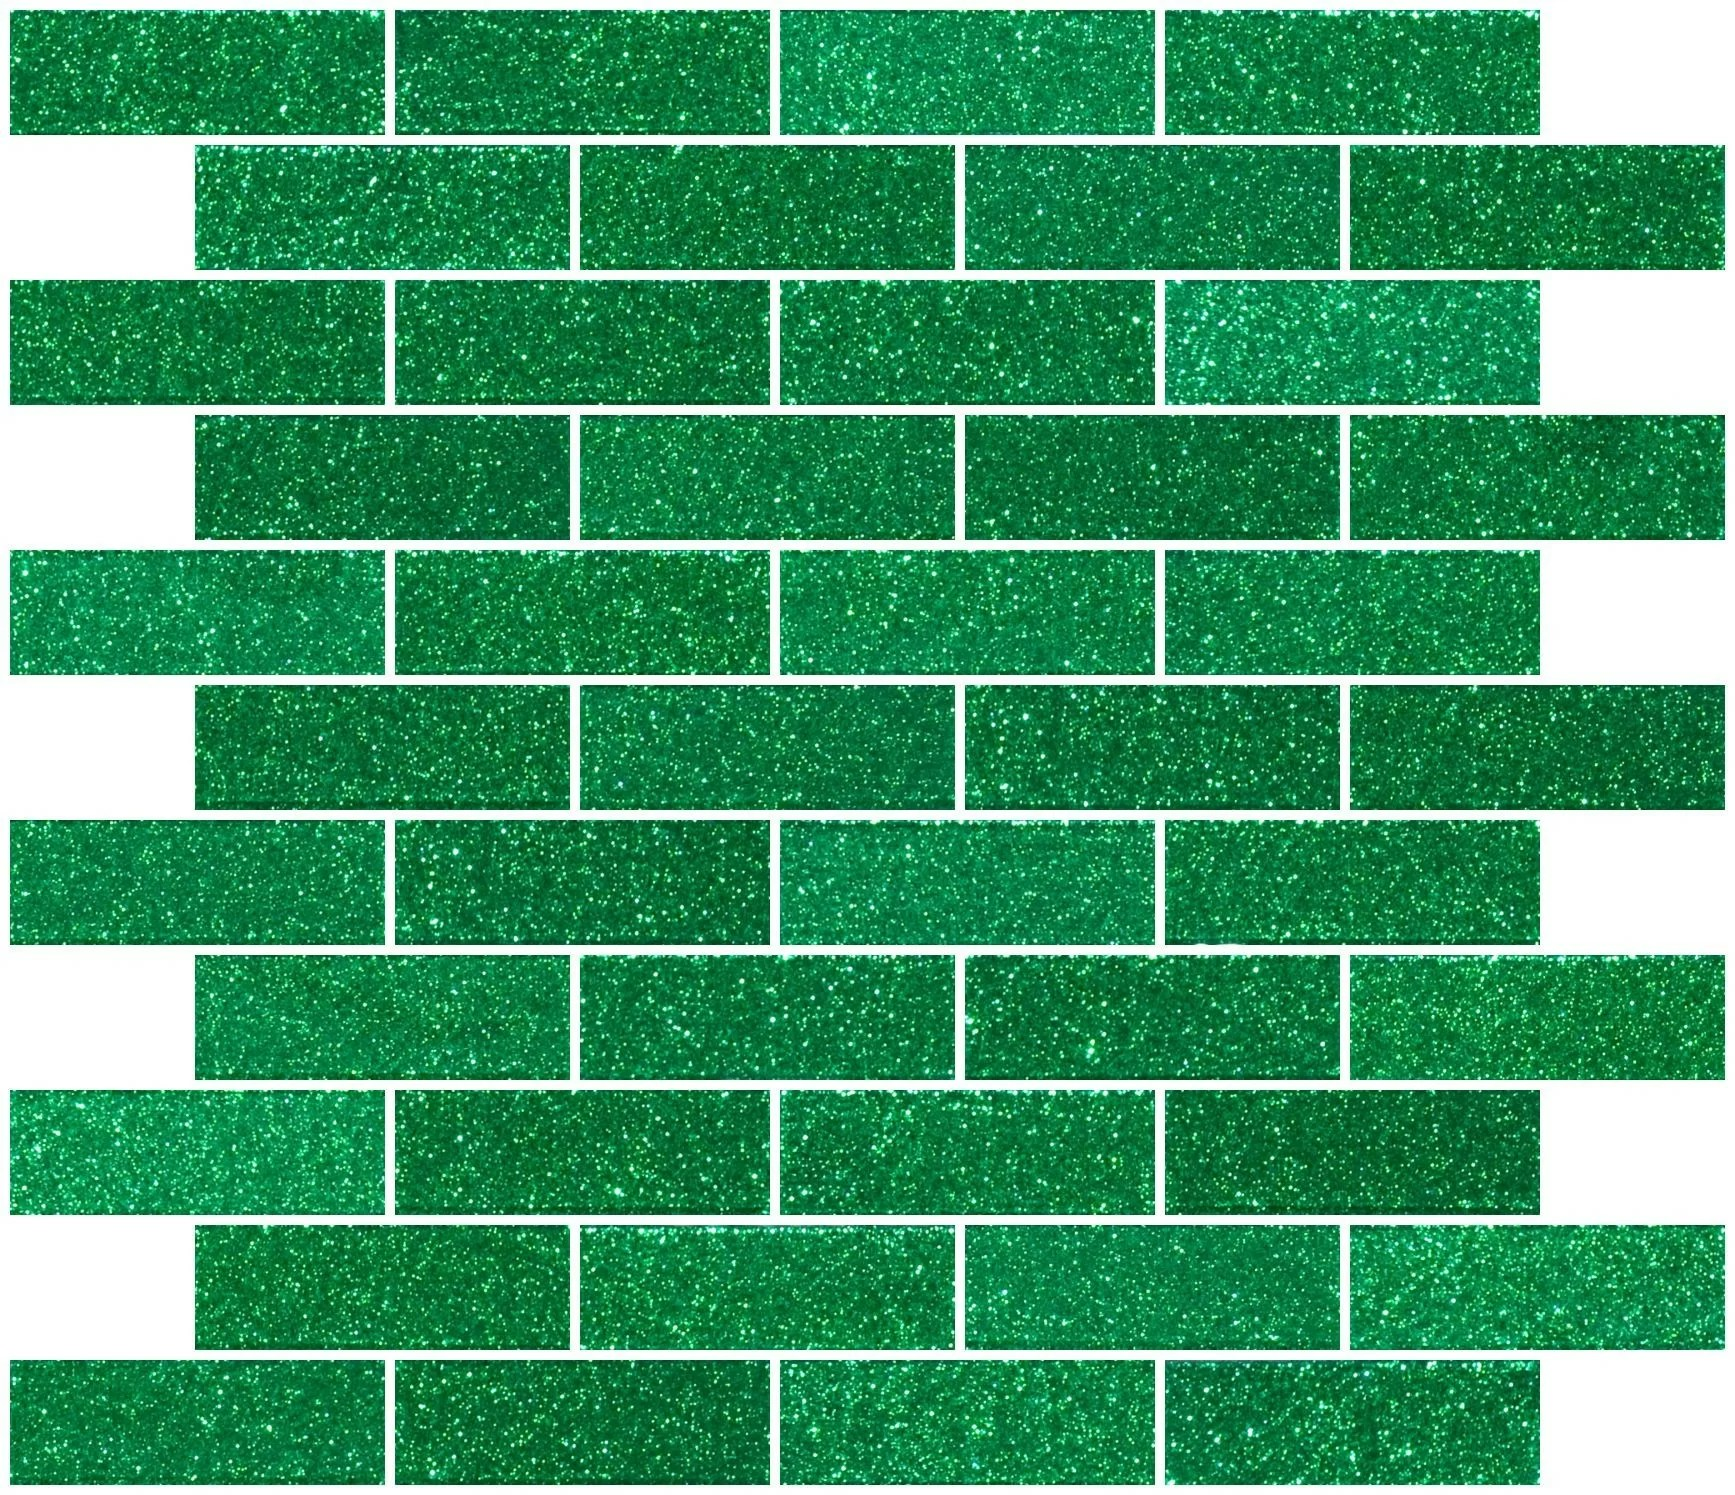 kily 1 x 3 glass subway tile in emerald green